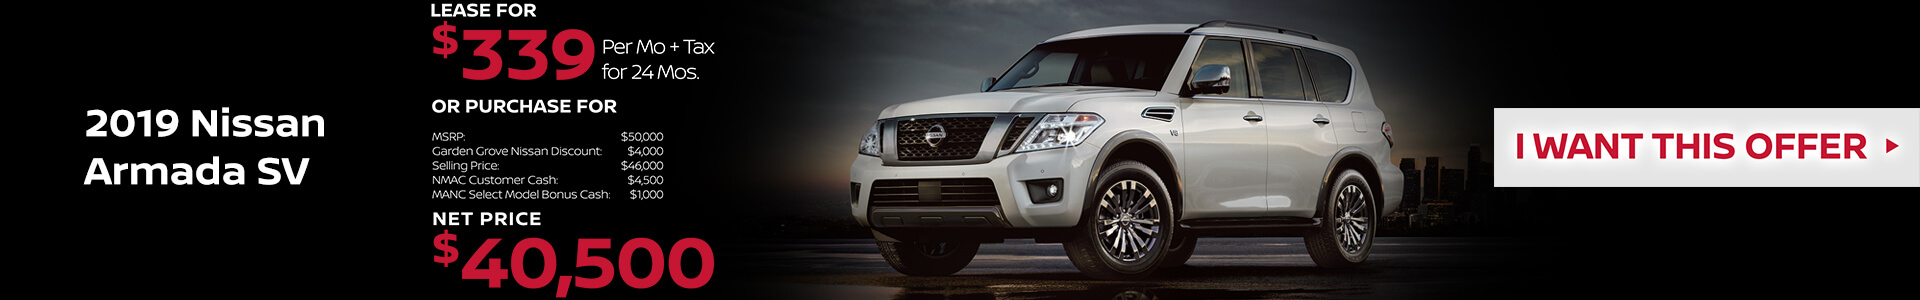 2019 Nissan Armada Lease for $339